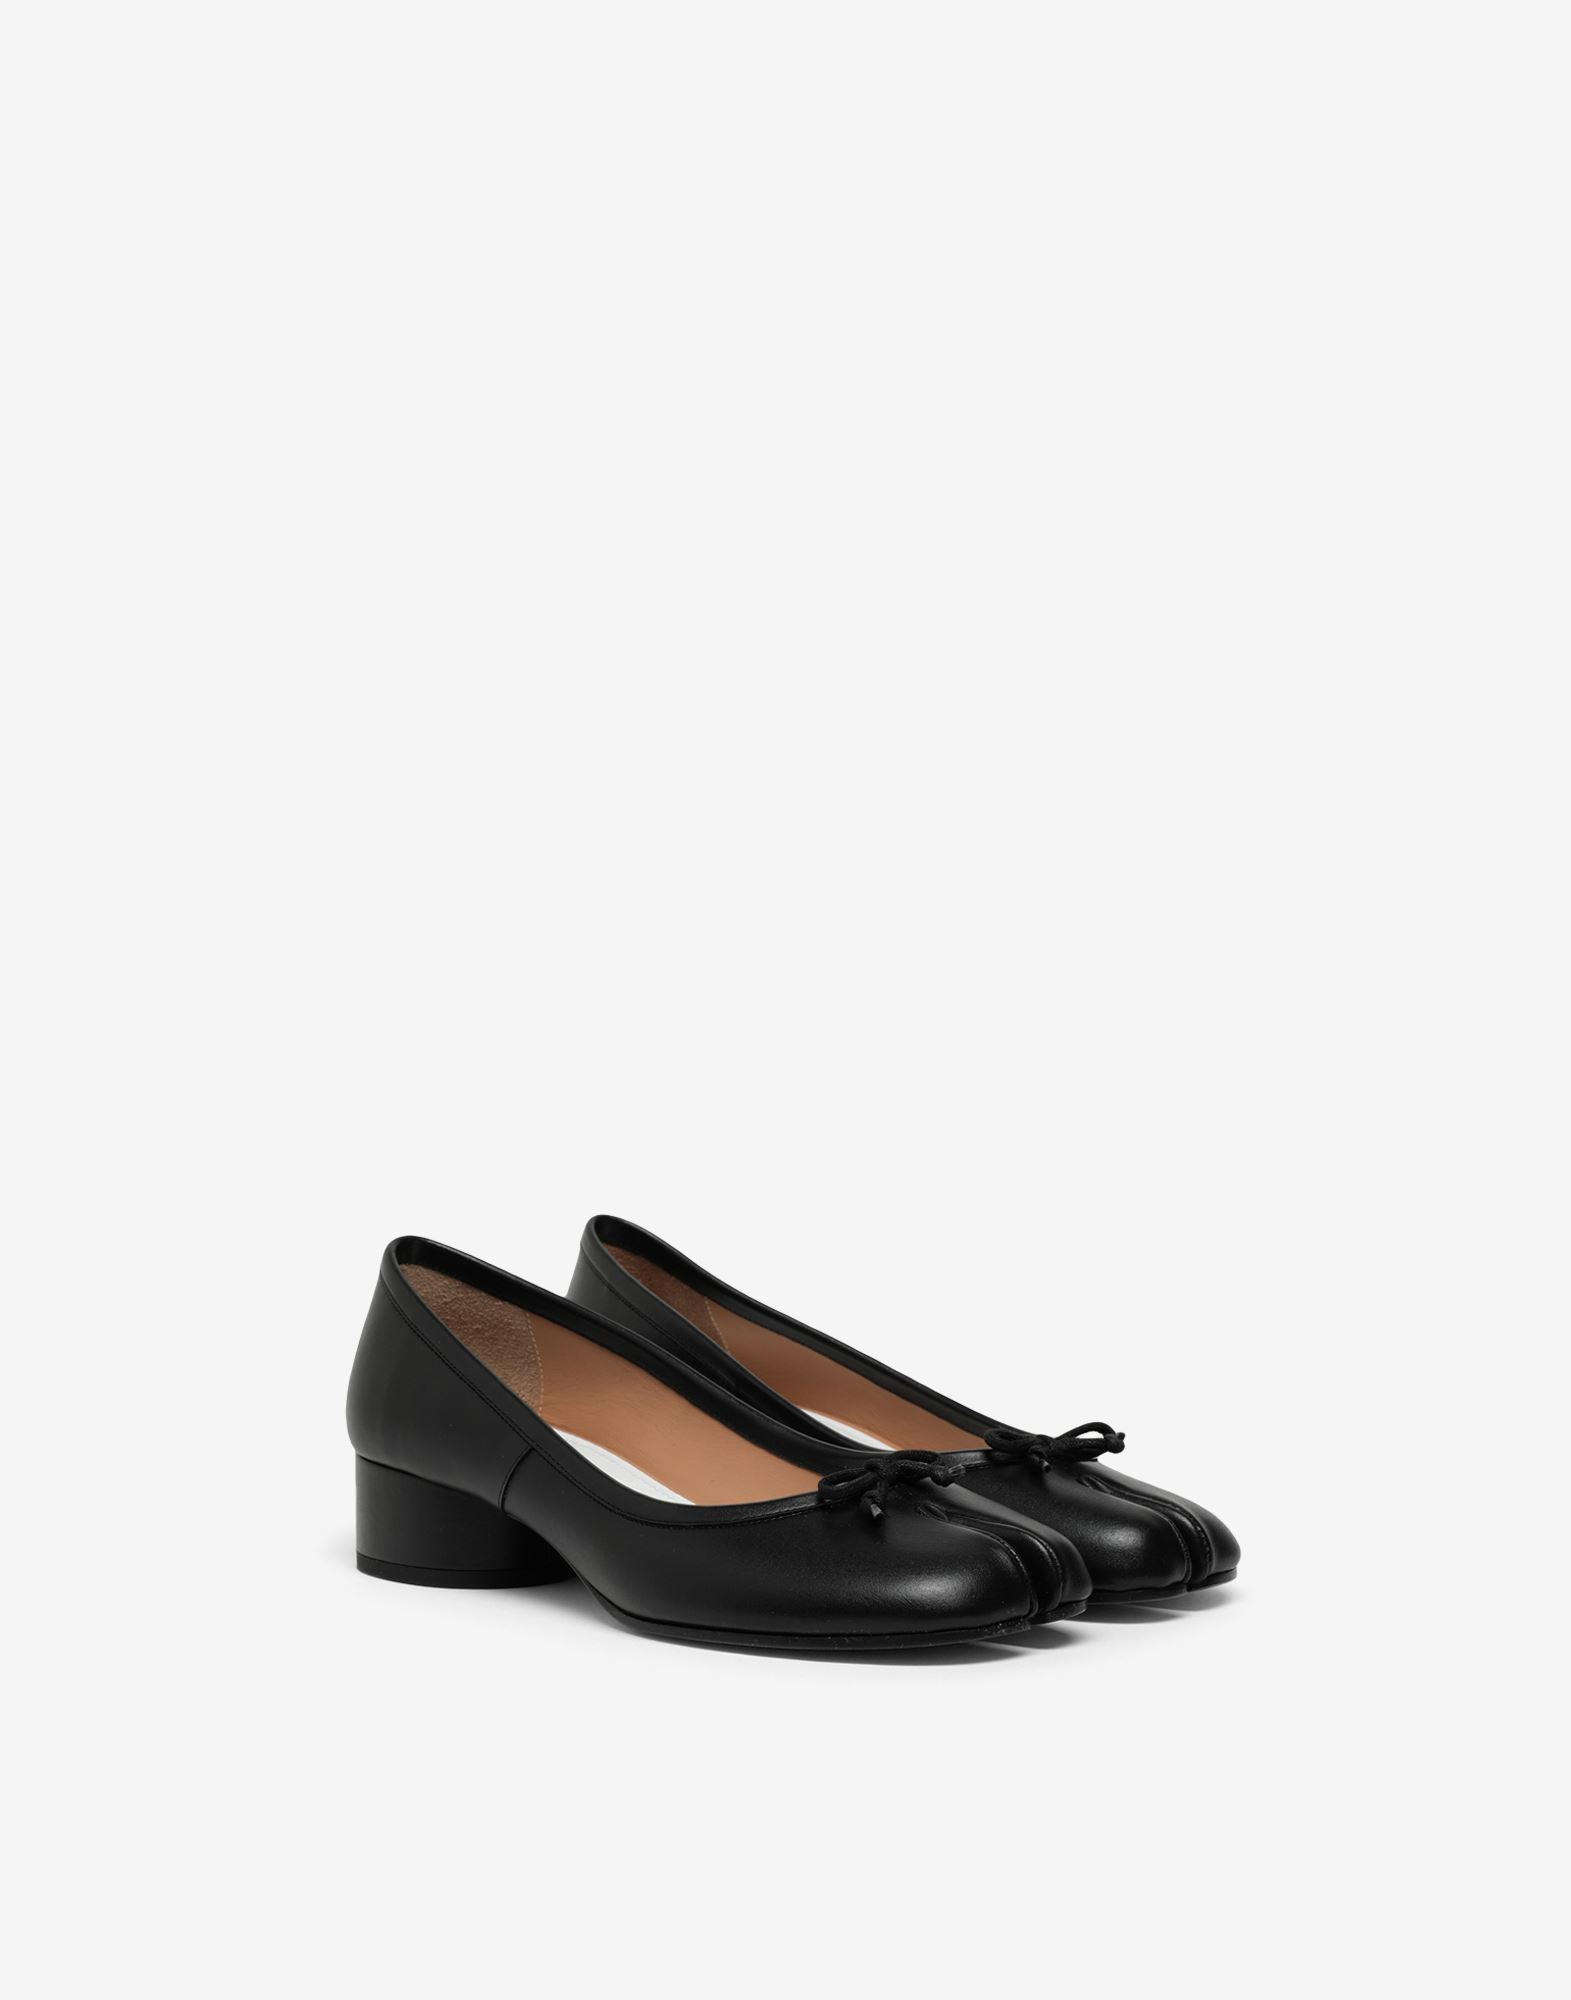 MAISON MARGIELA Tabi leather ballerina pumps Tabi ballet flats Woman r